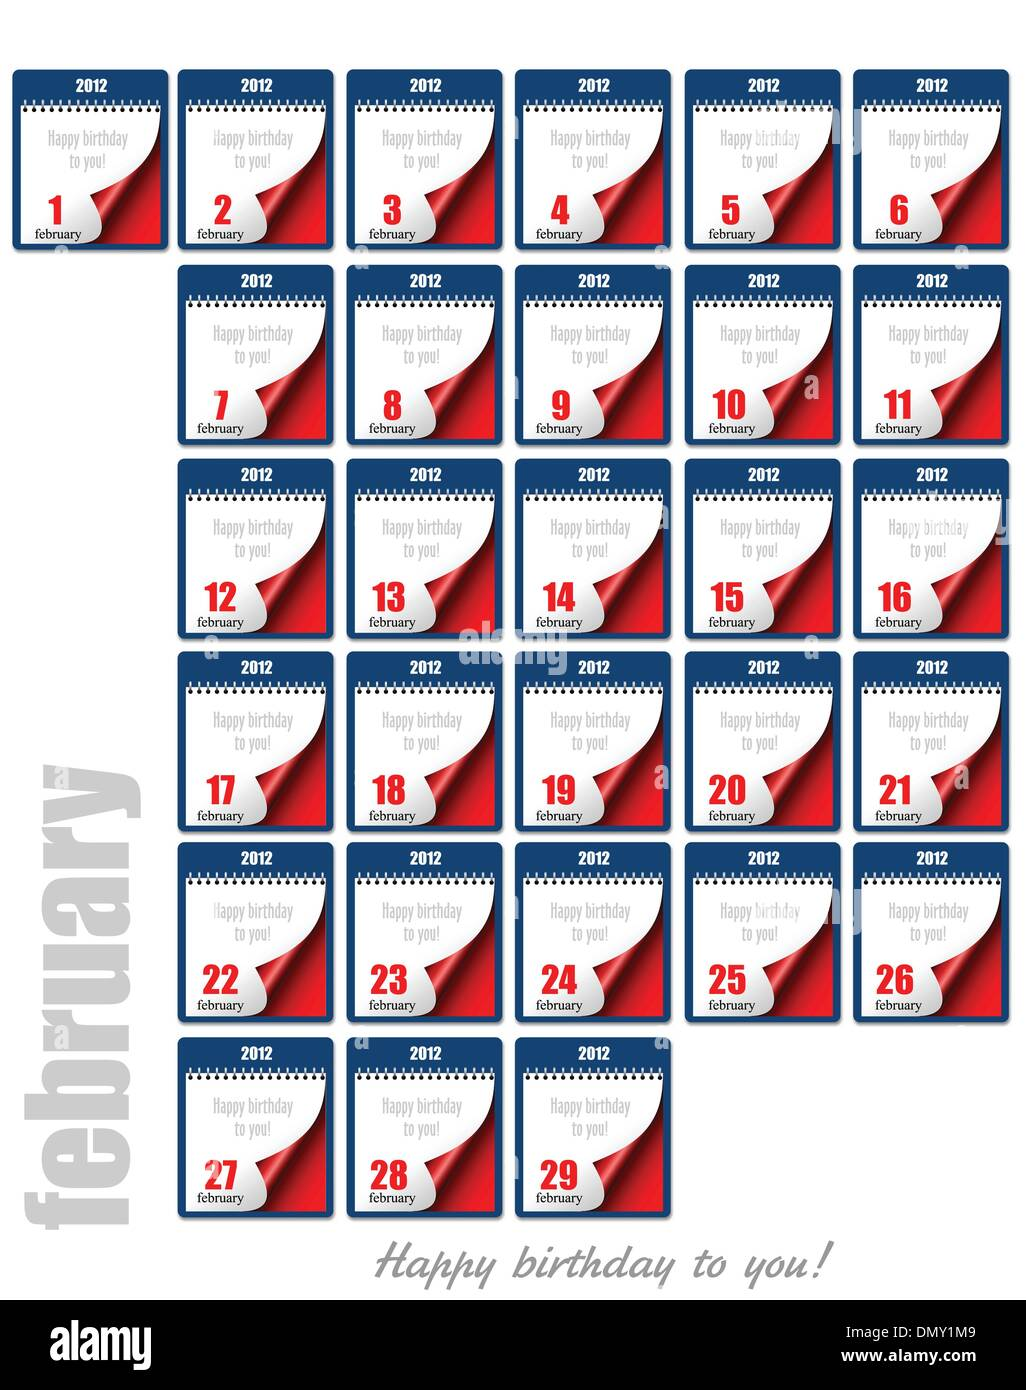 Tear-off Calendar 2012. Each day of February. Happy birthday to - Stock Image